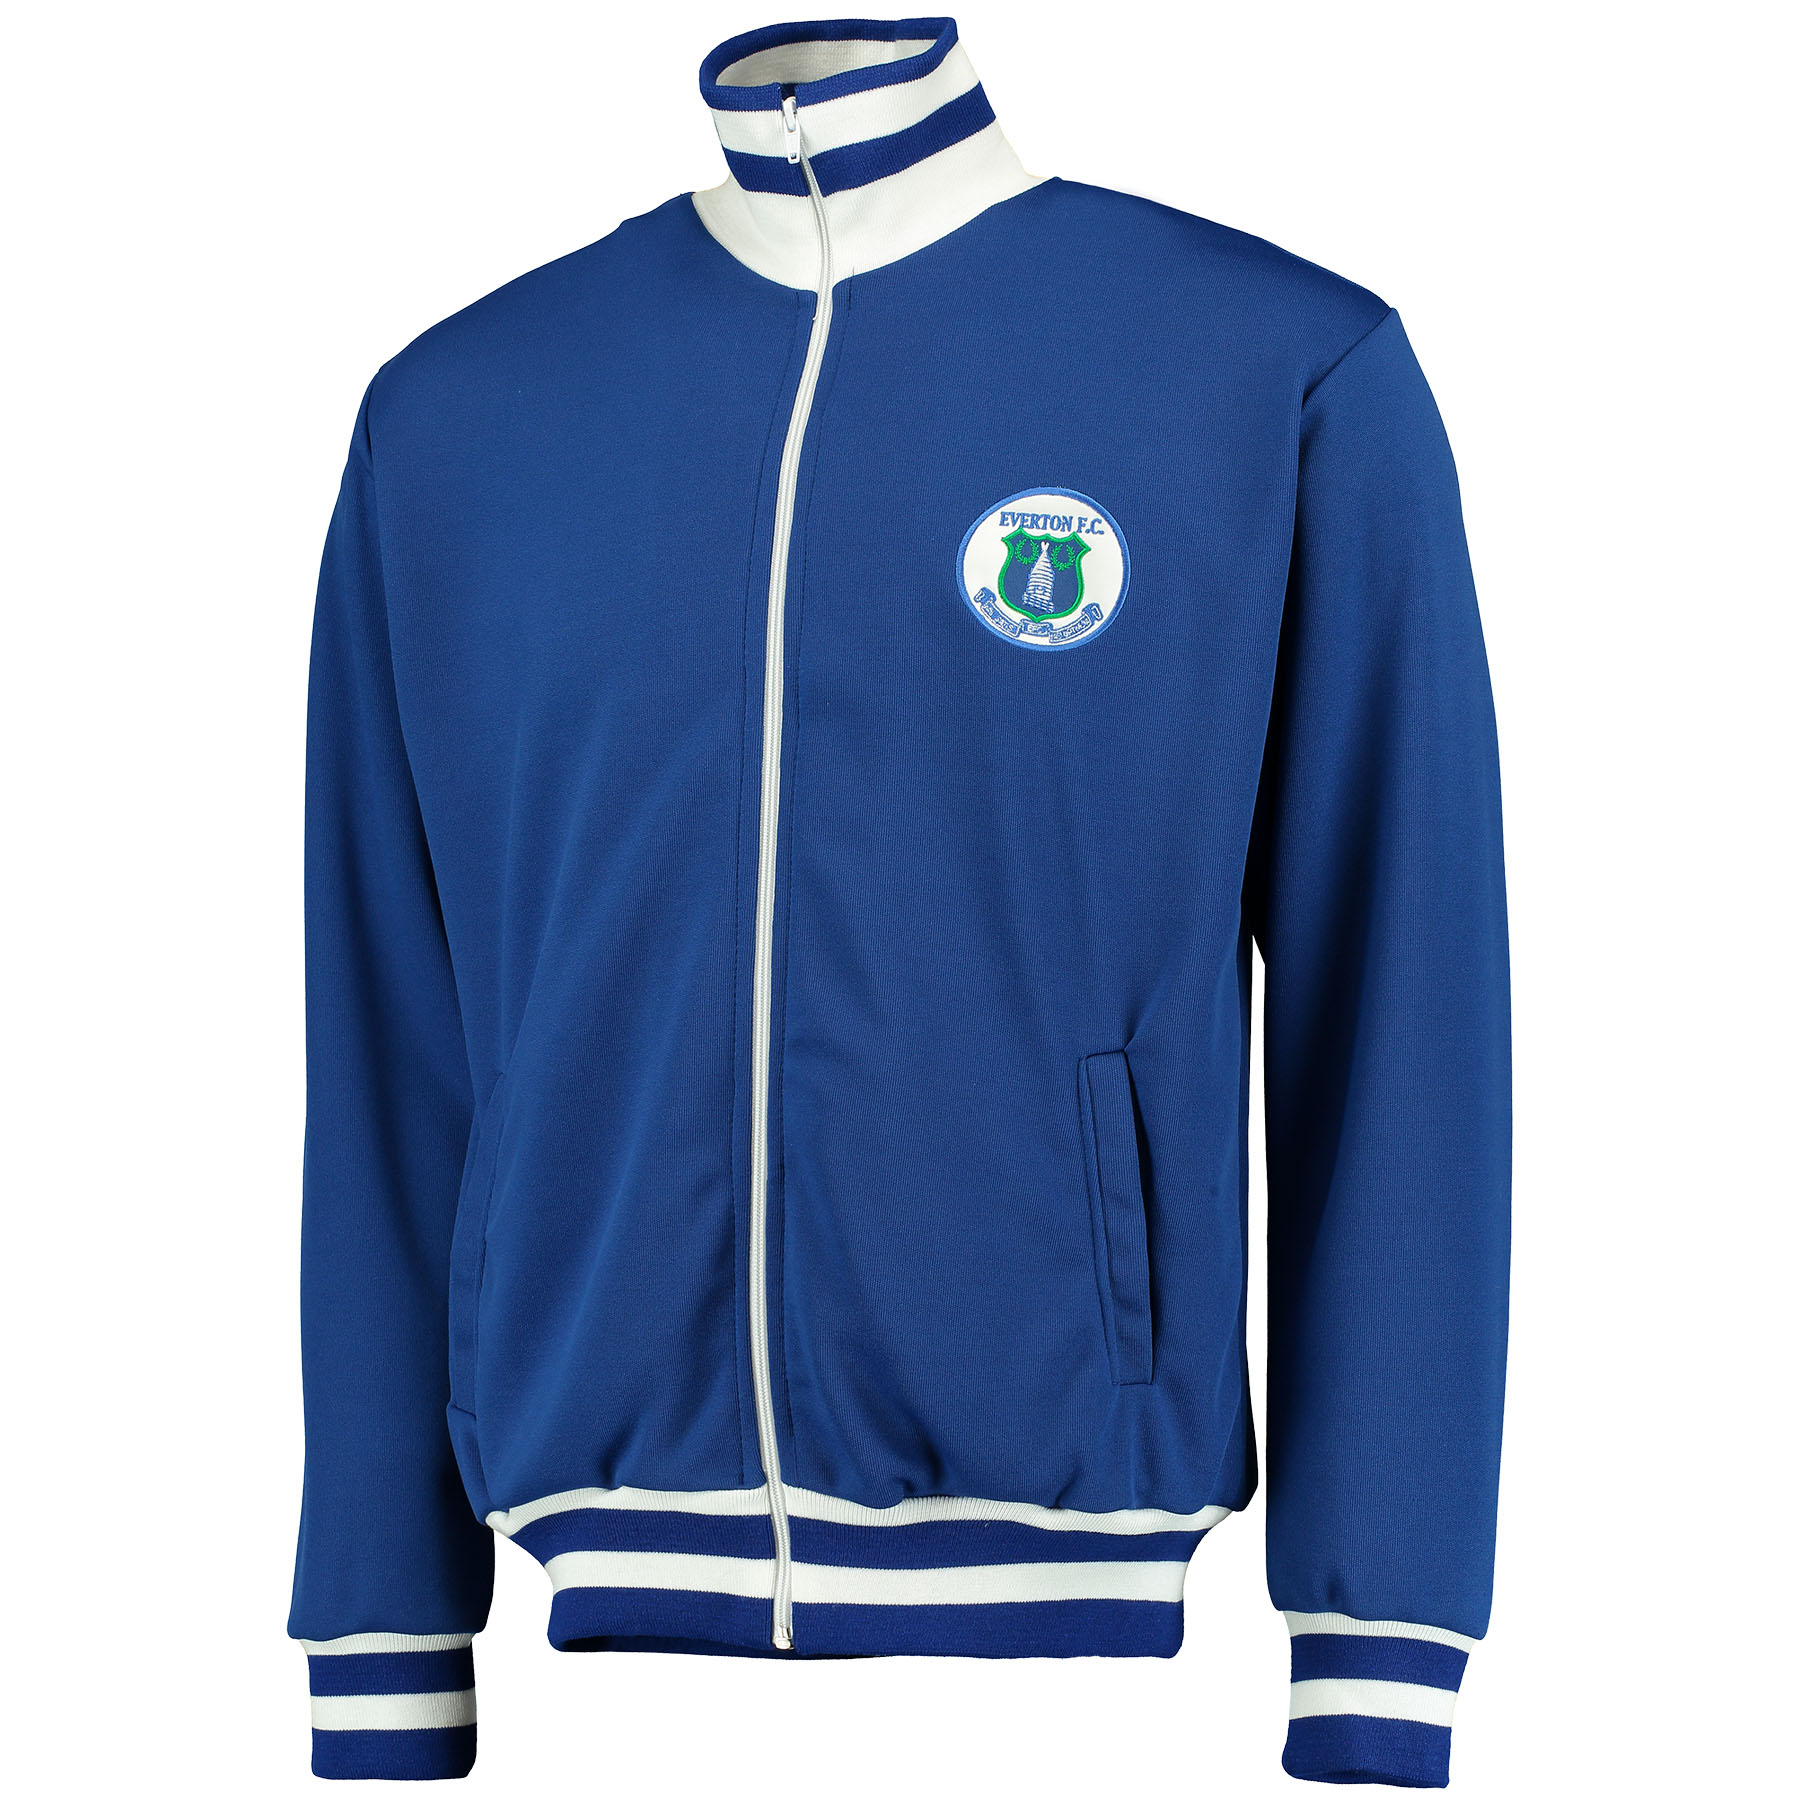 Everton 1978 Track Jacket